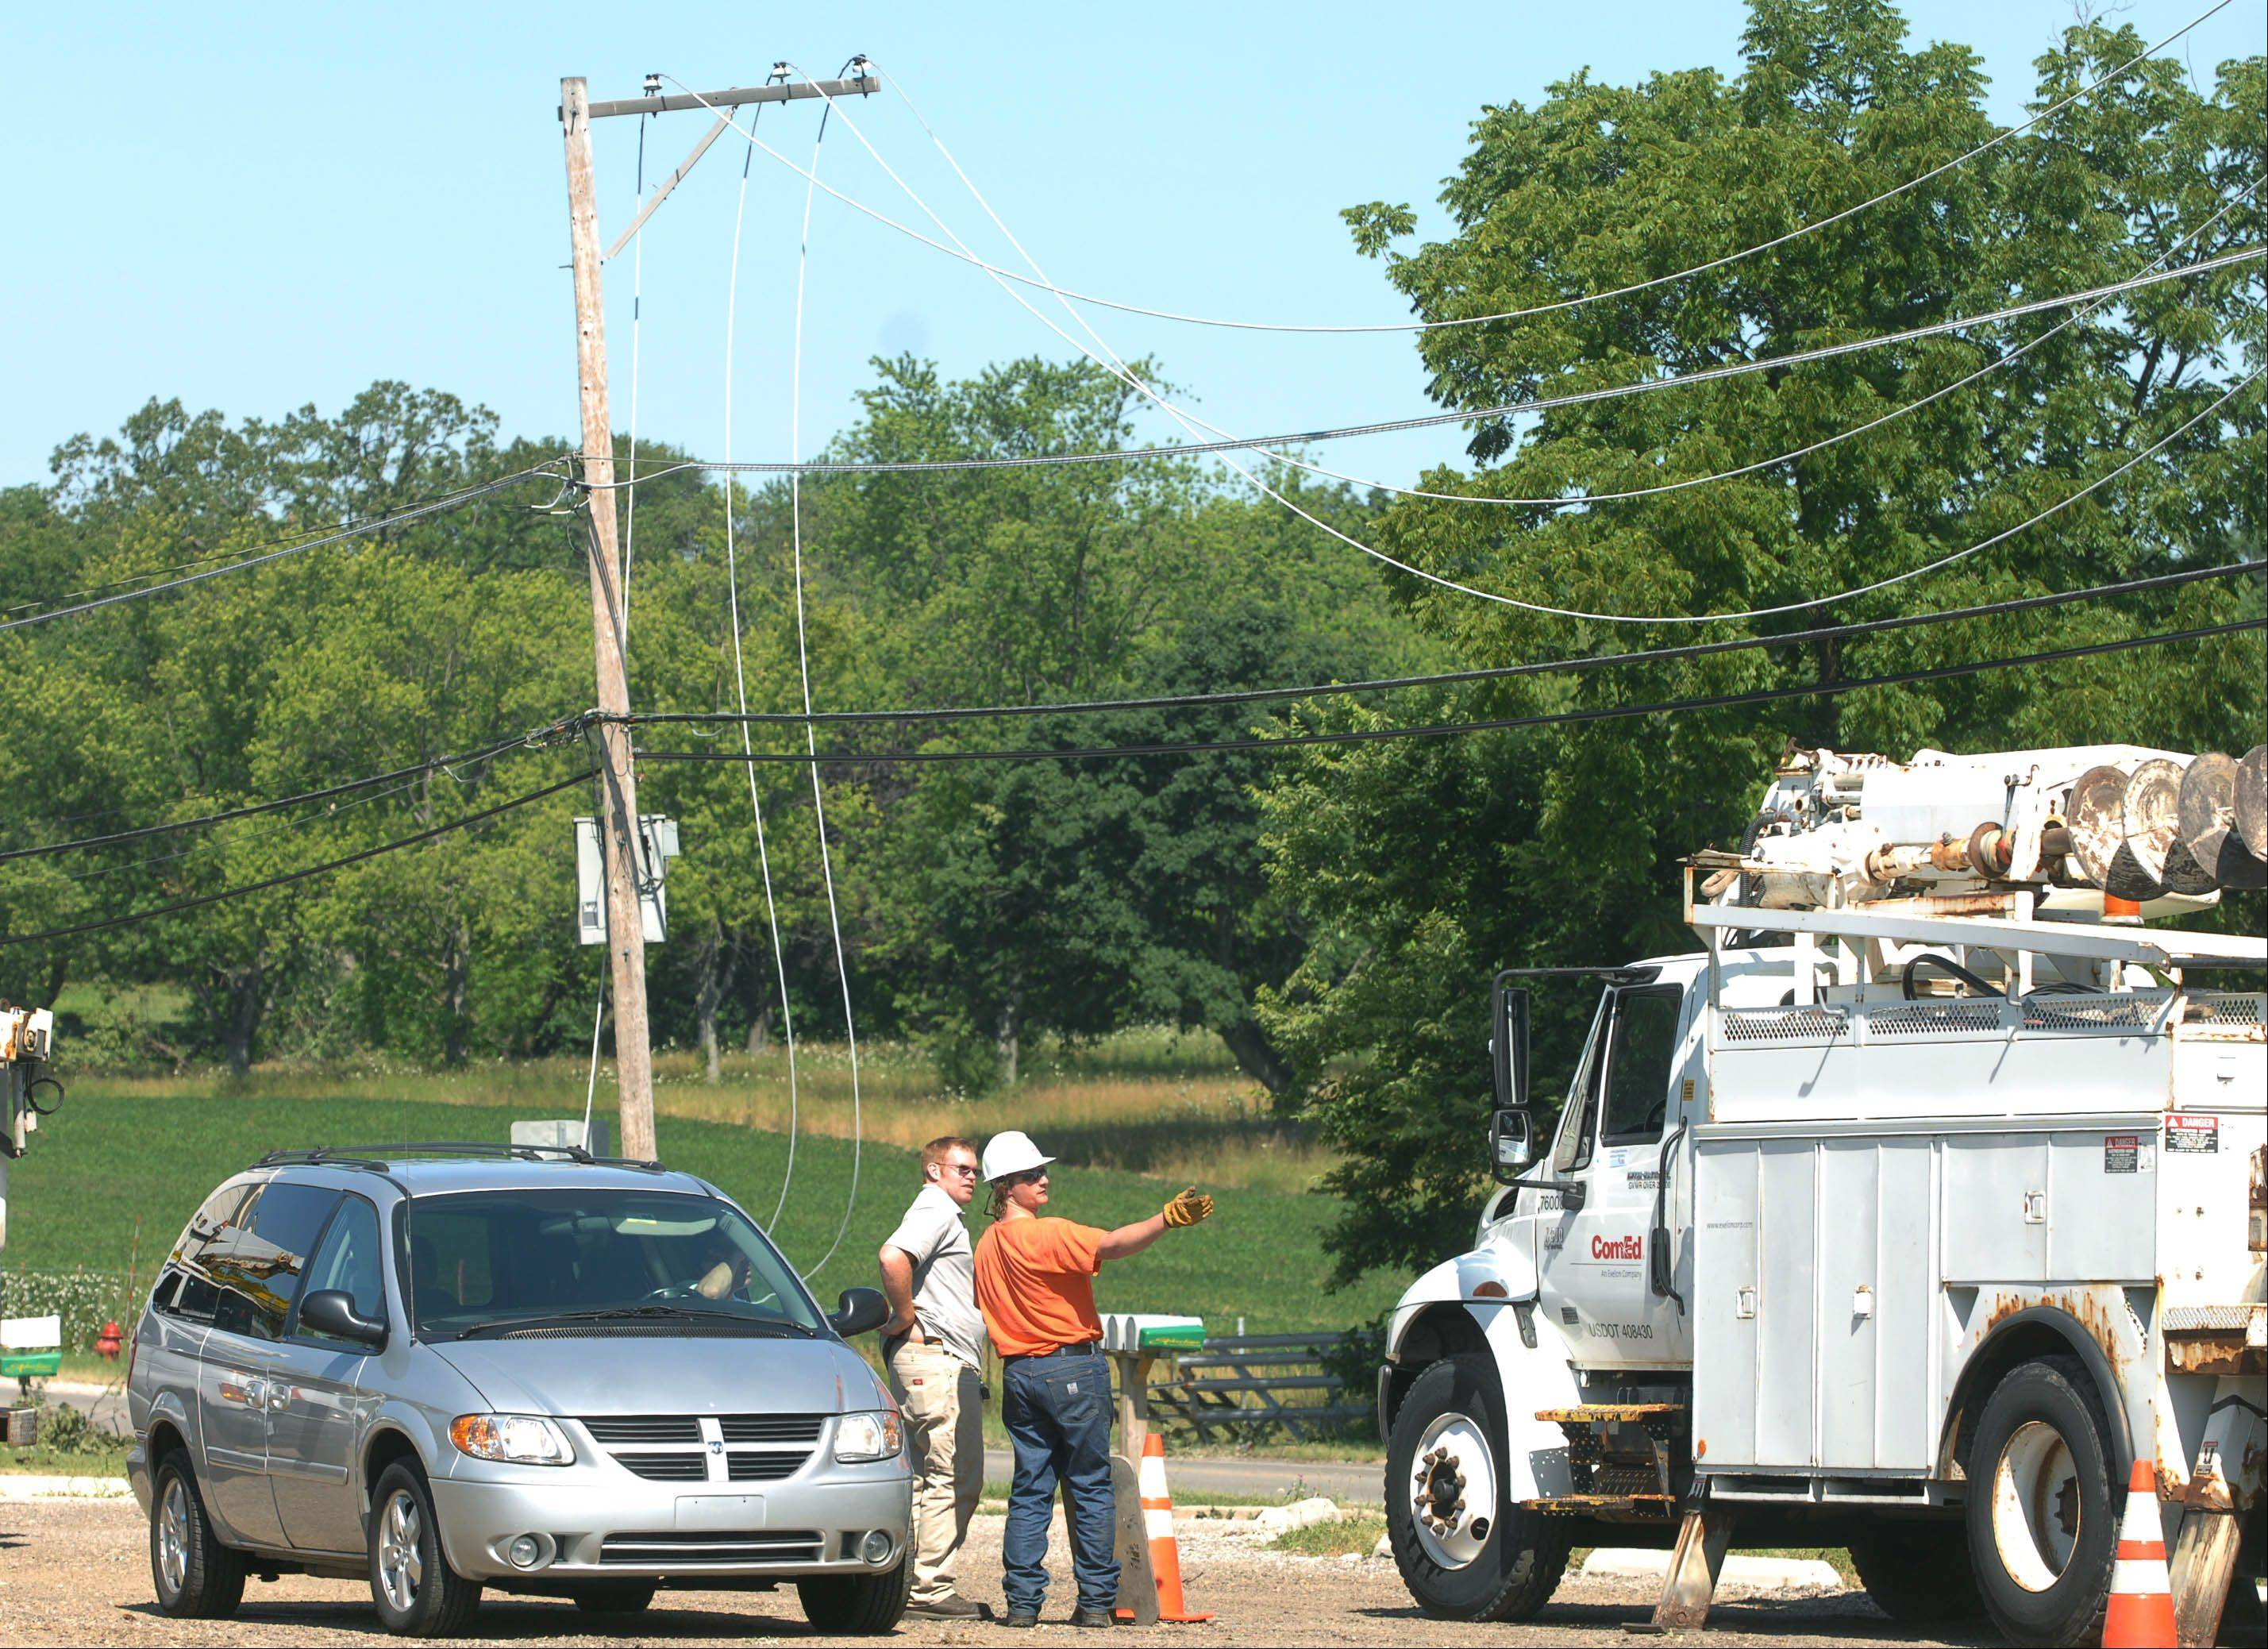 ComEd crews on the scene of downed power lines at Grand and Cedar Avenues in downtown Lake Villa Tuesday morning.